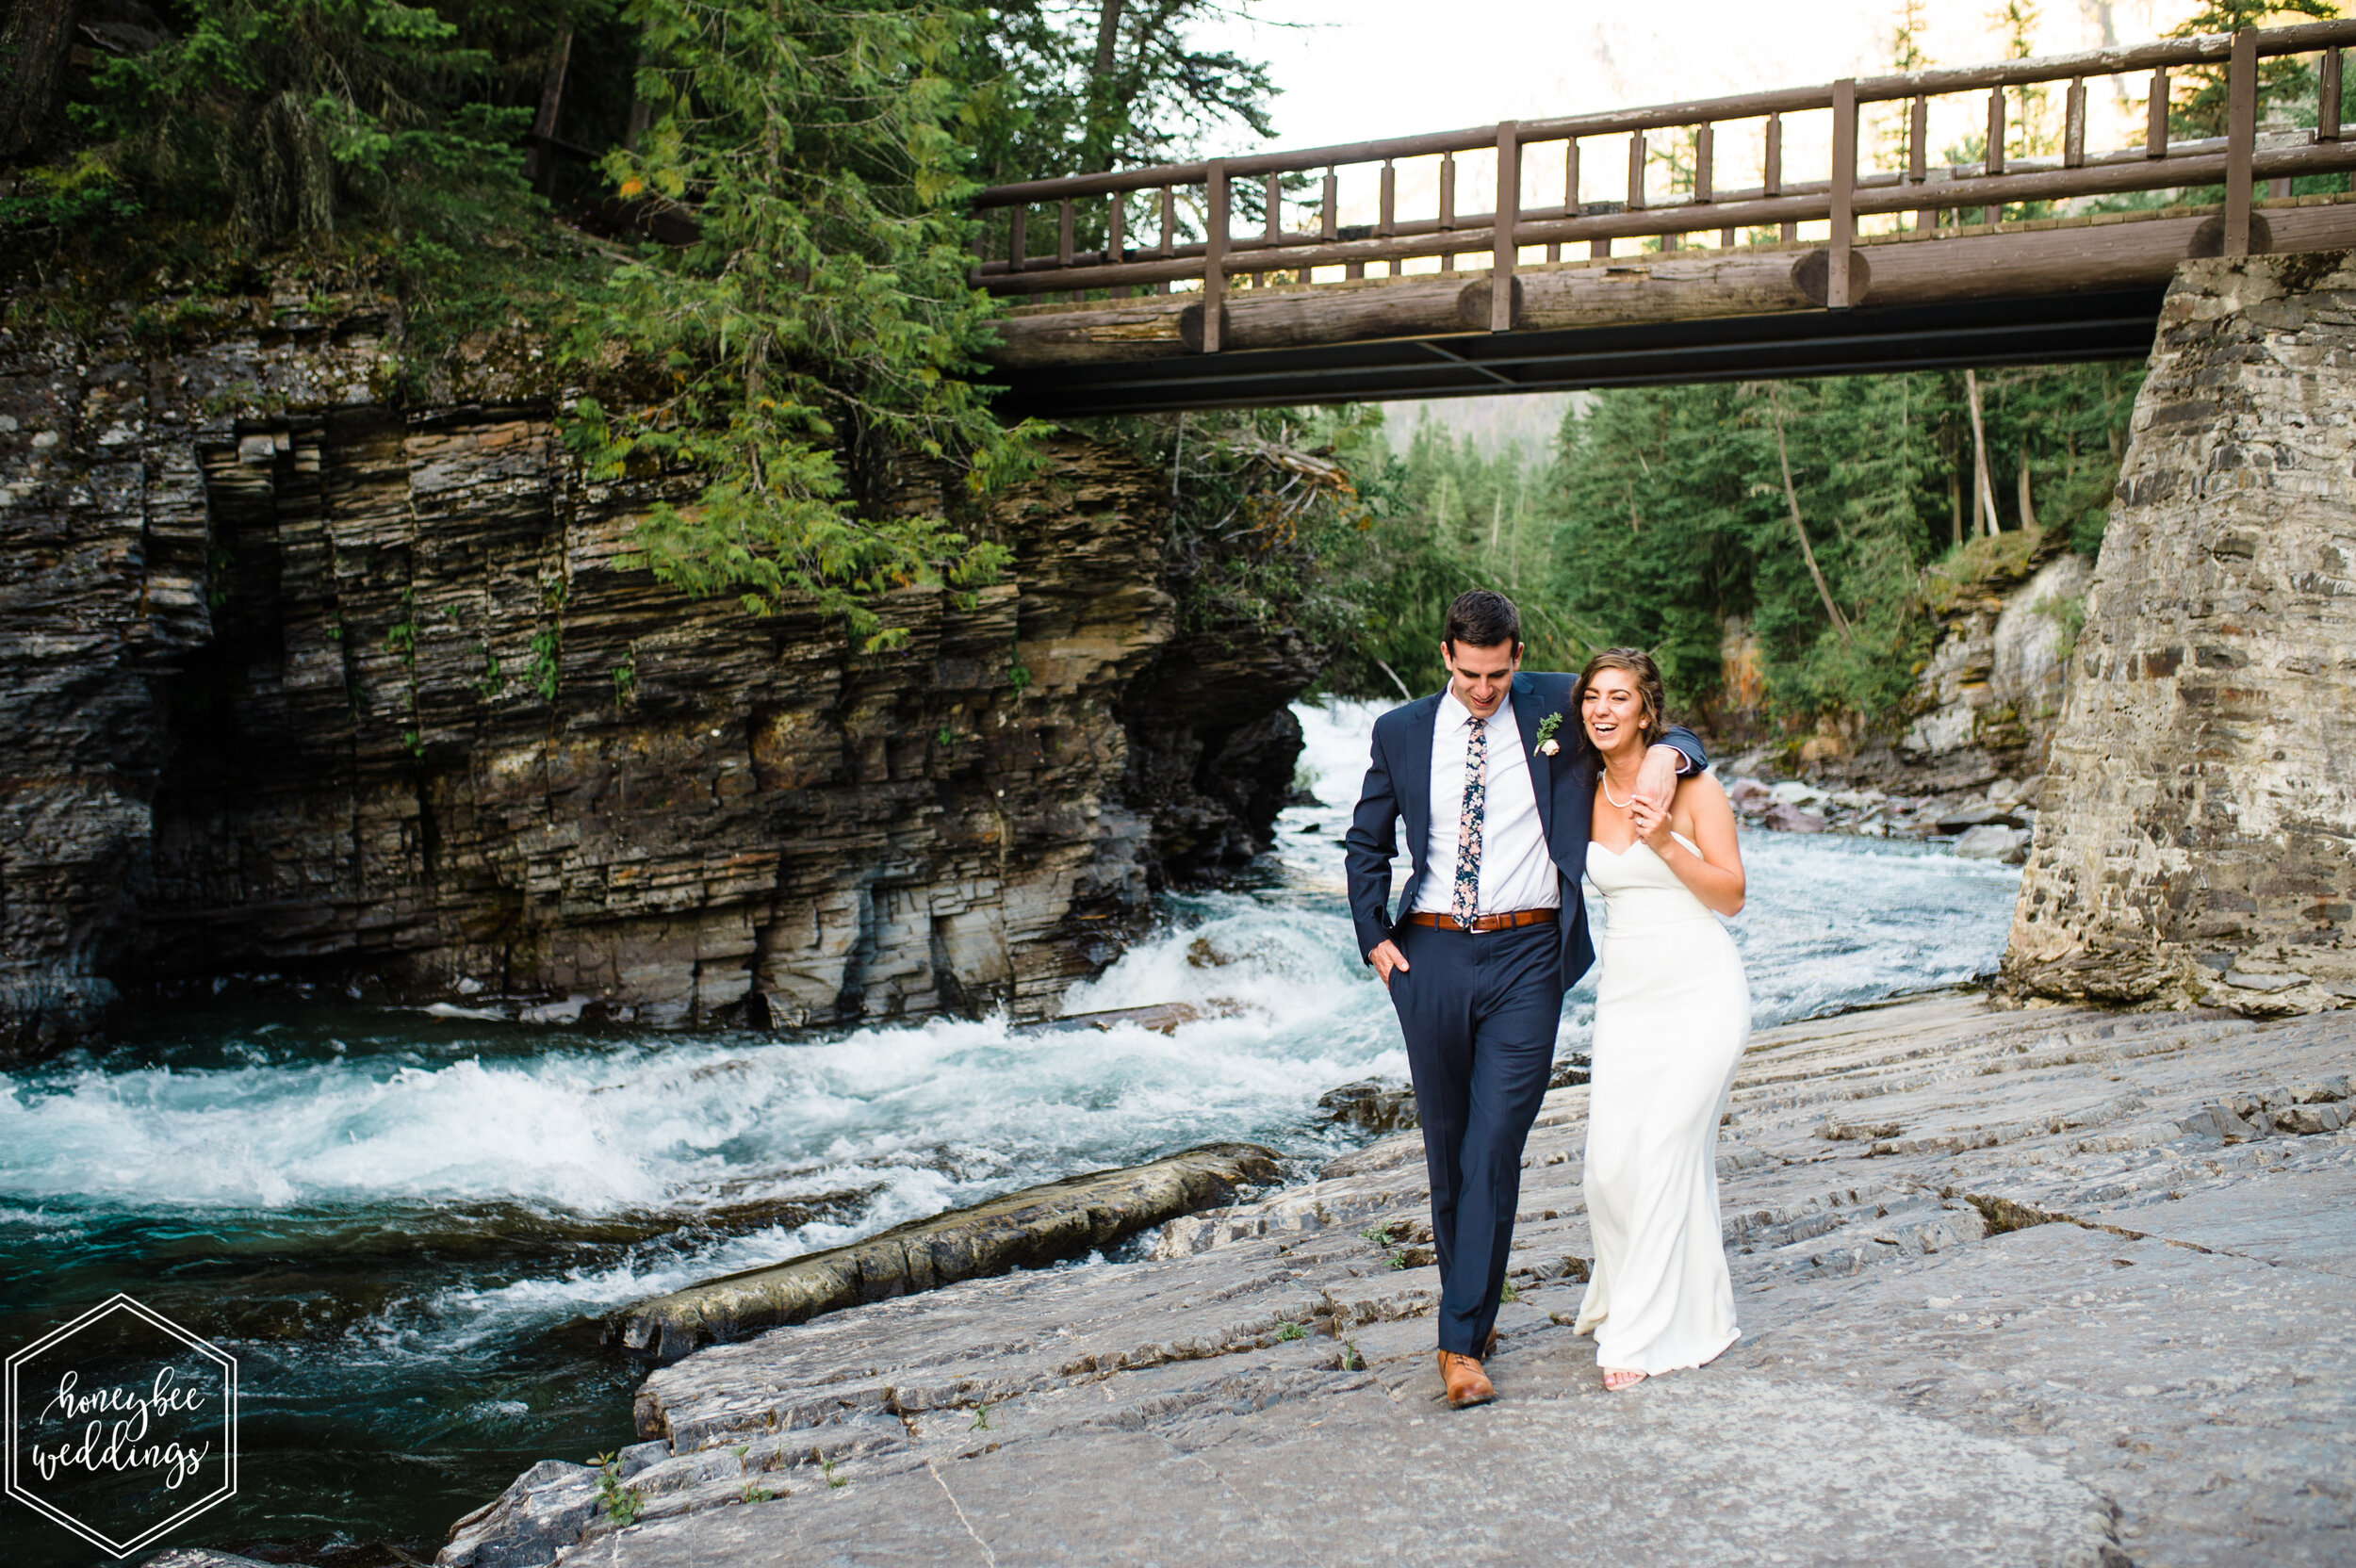 161Glacier National Park Wedding_Glacier Outdoor Center_Honeybee Weddings_Anna & Seth_July 21, 2019-2403.jpg